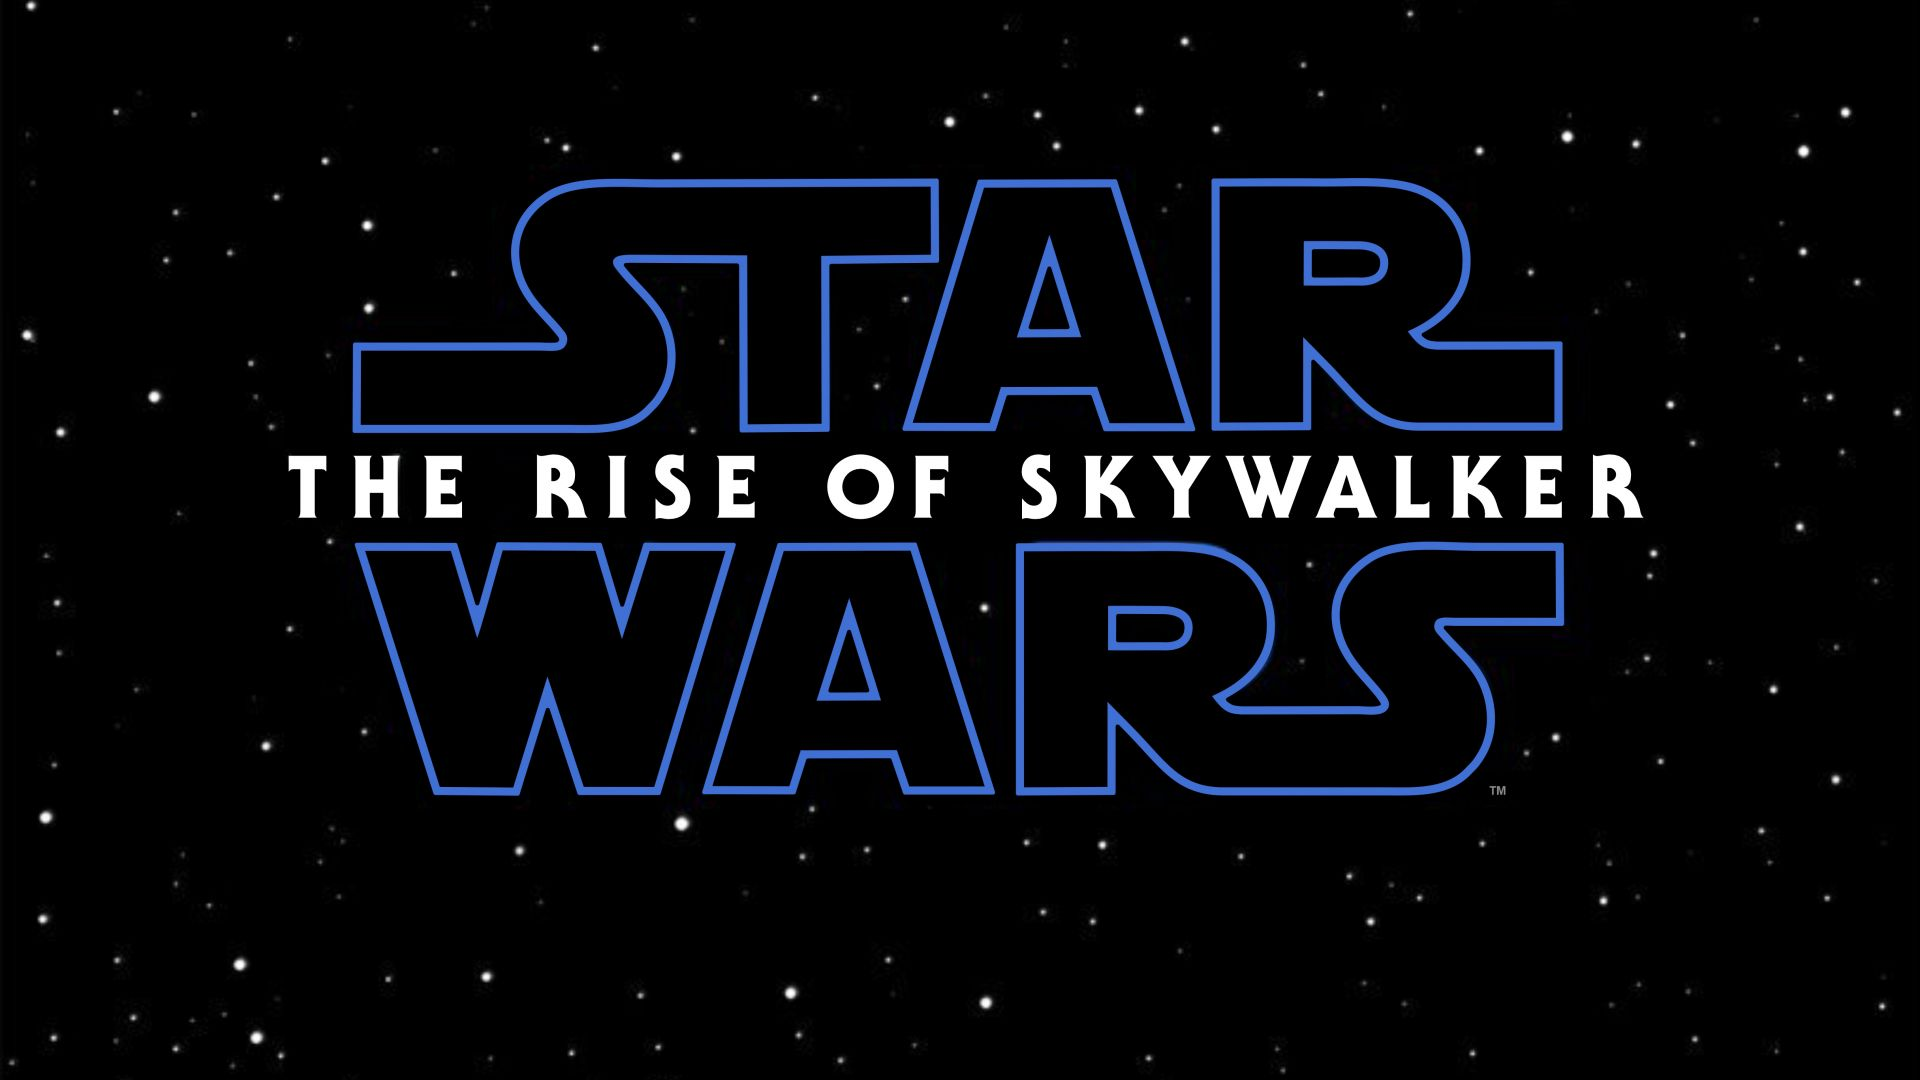 Star Wars Episode IX Star Wars The Rise of Skywalker Poster HD Wallpaper